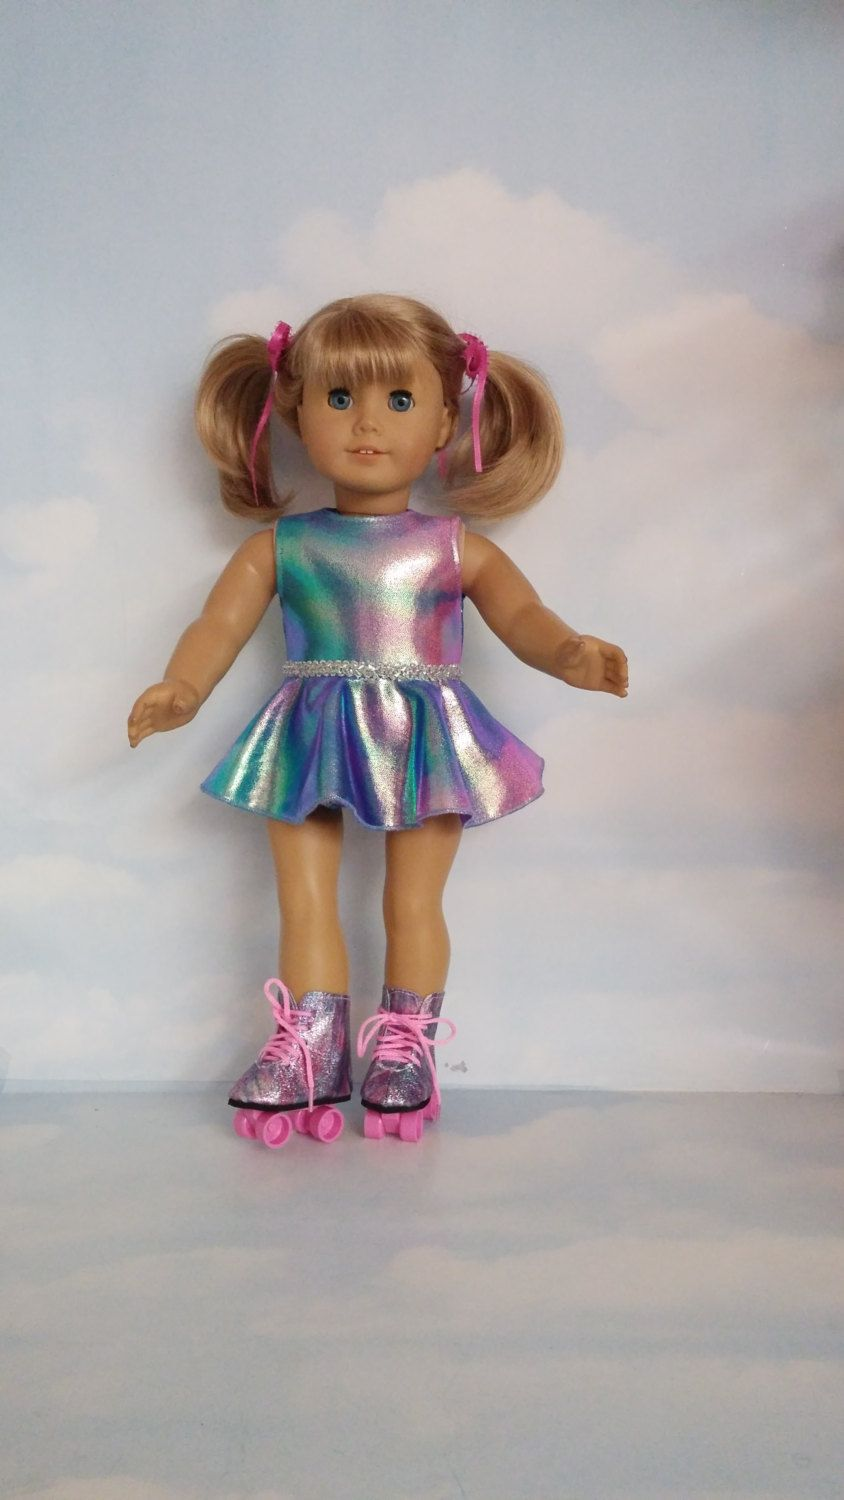 18 inch doll clothes - #830 Rainbow Roller Skating Outfit handmade ...